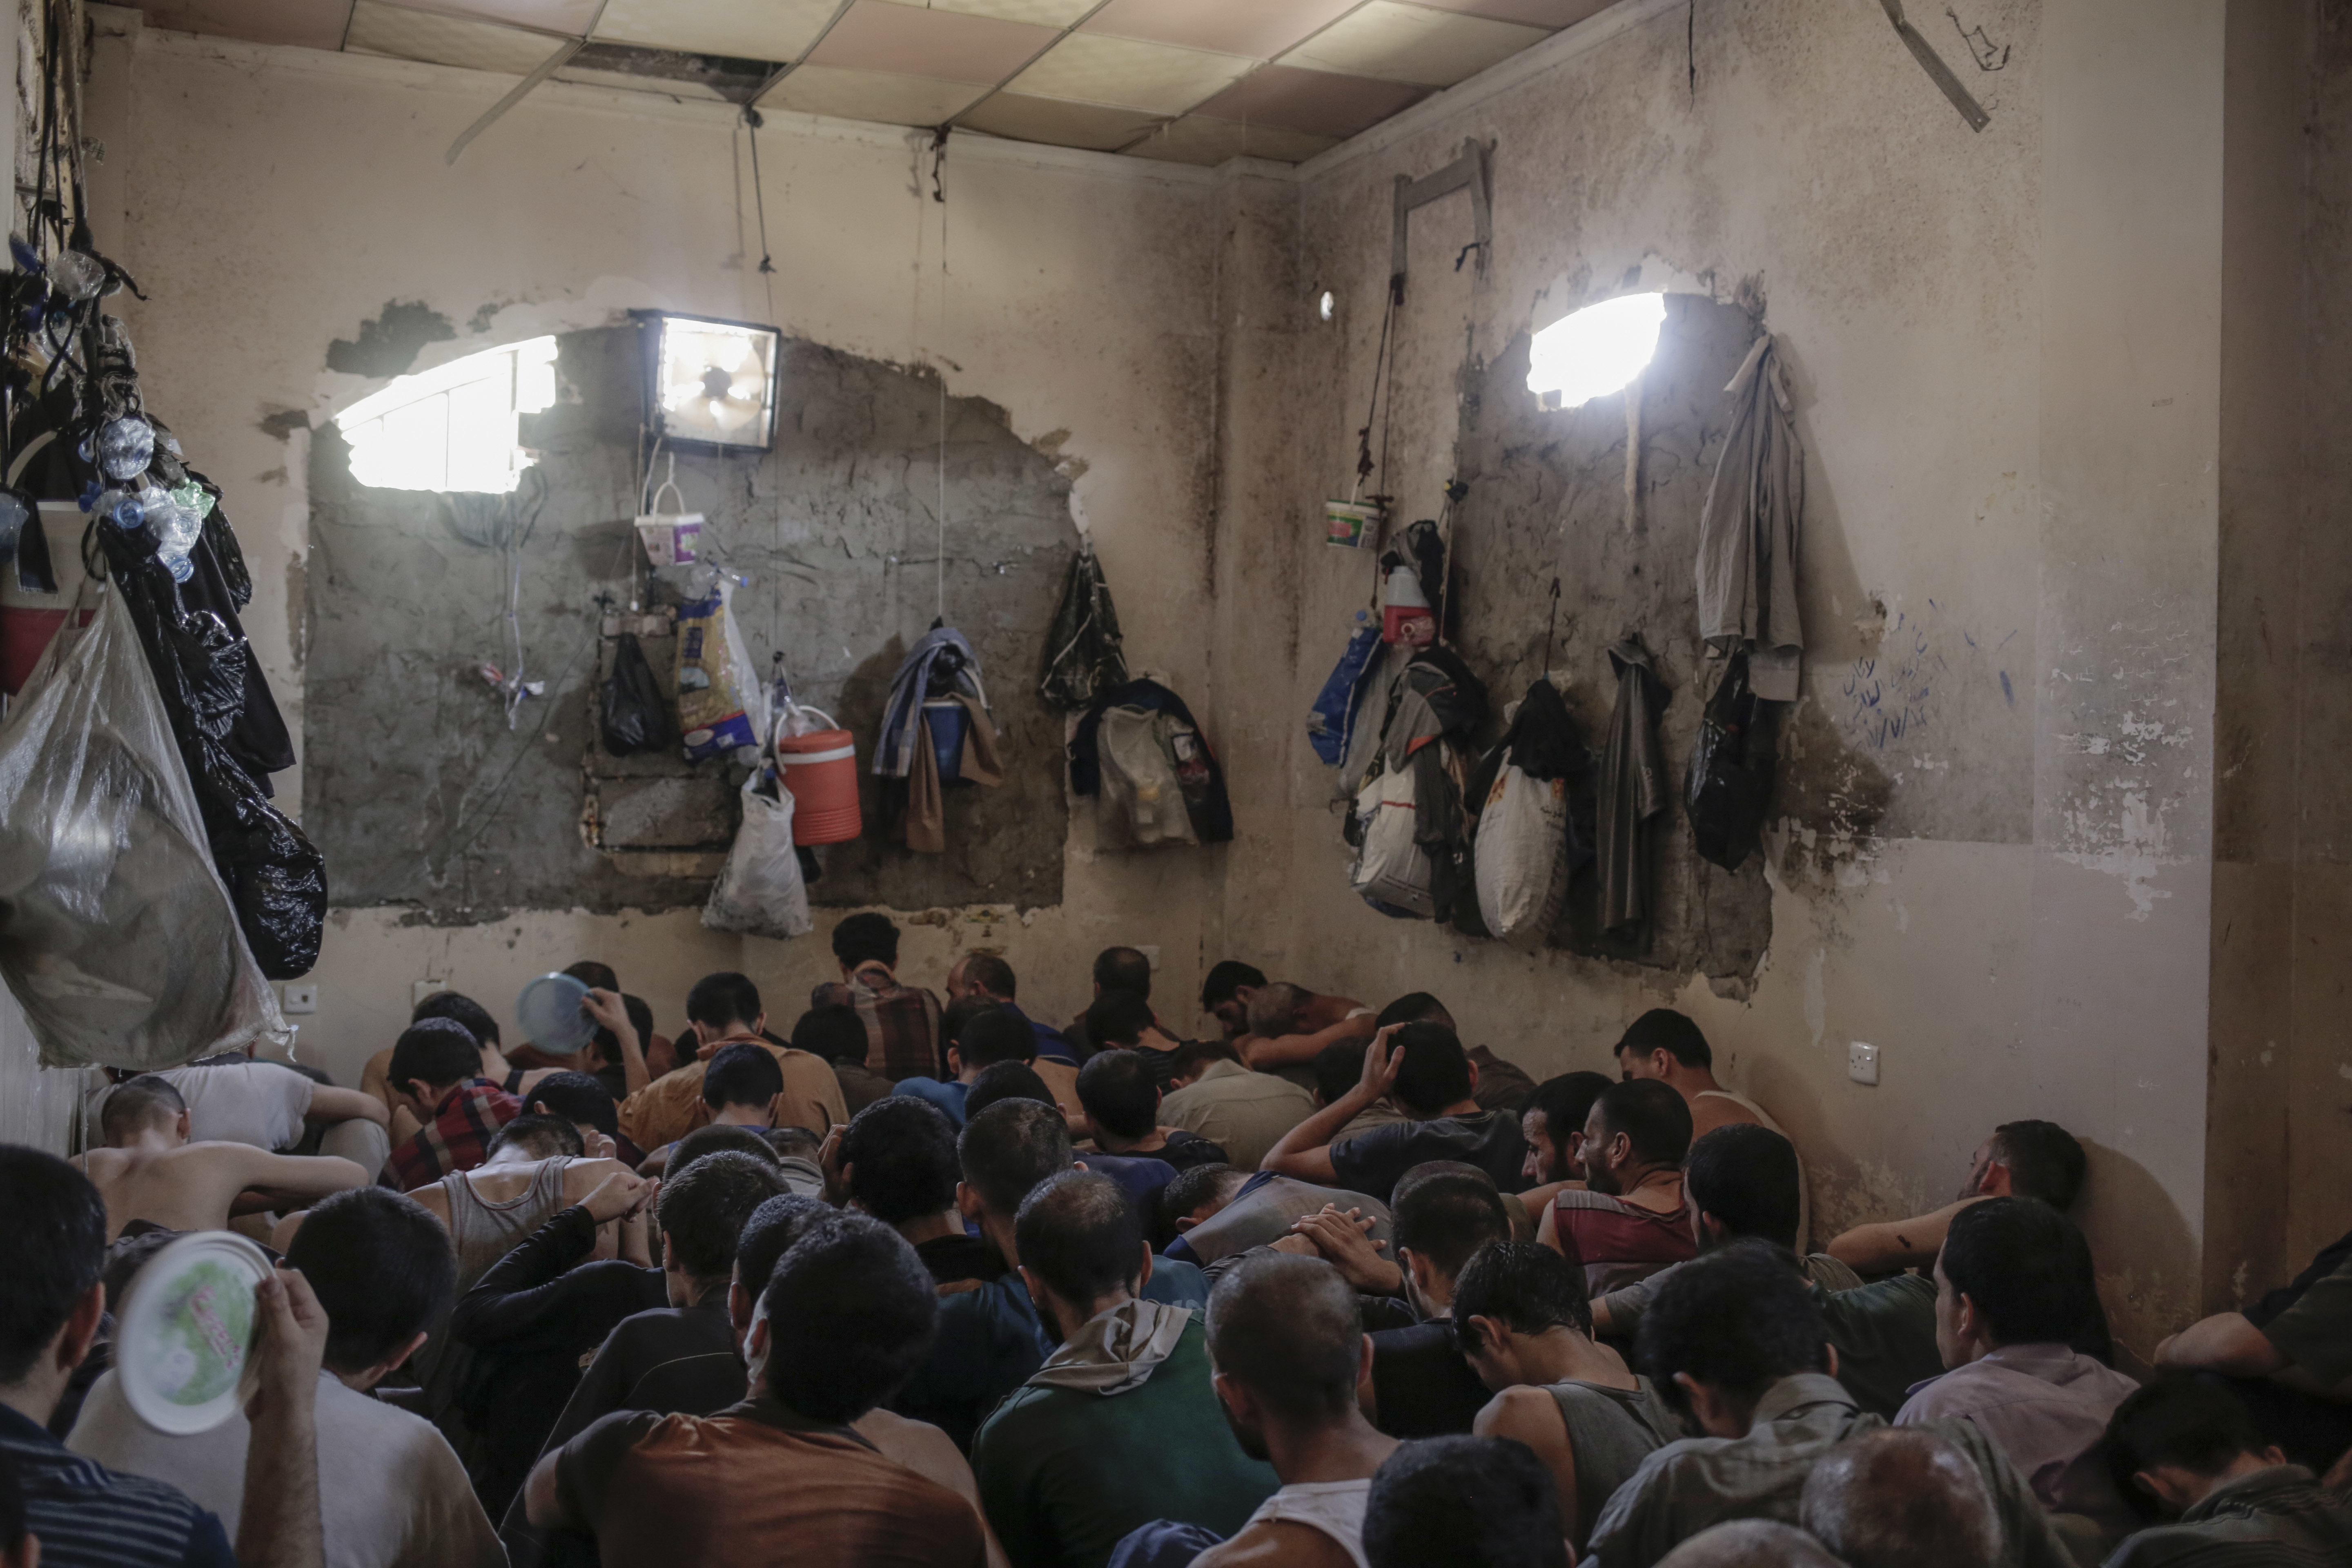 FILE - More than 100 Islamic State suspects sit inside a small room in a prison south of Mosul, July 18, 2017.